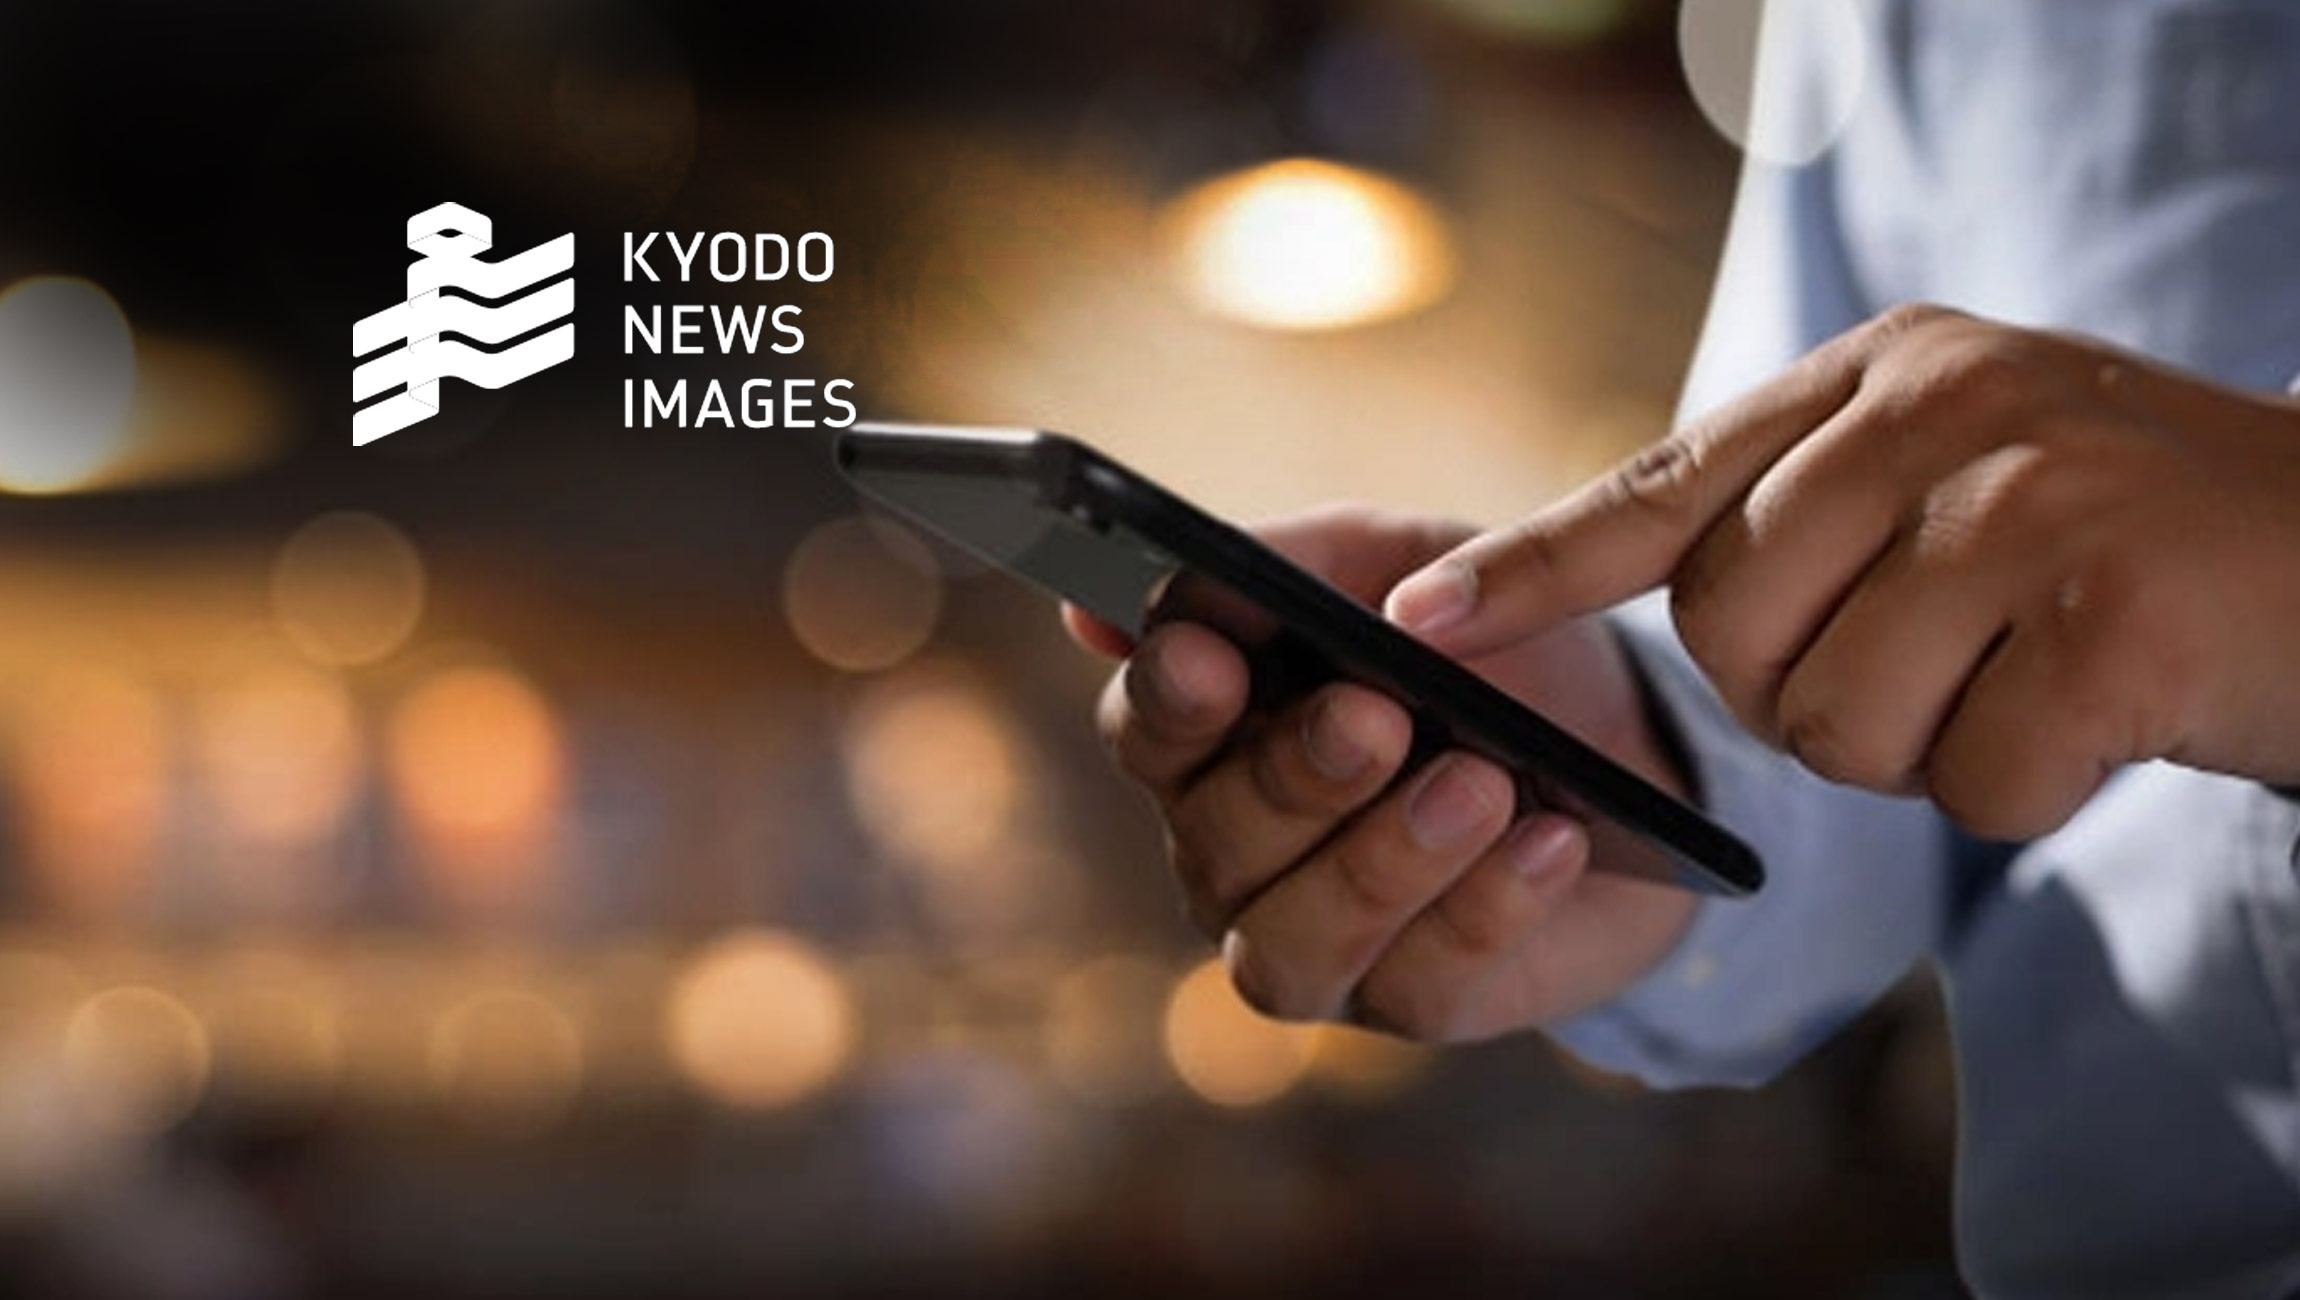 """Kyodo News Images (KI) Launches New and Improved Online Sales Platform """"Image Link Global (ILG)"""""""